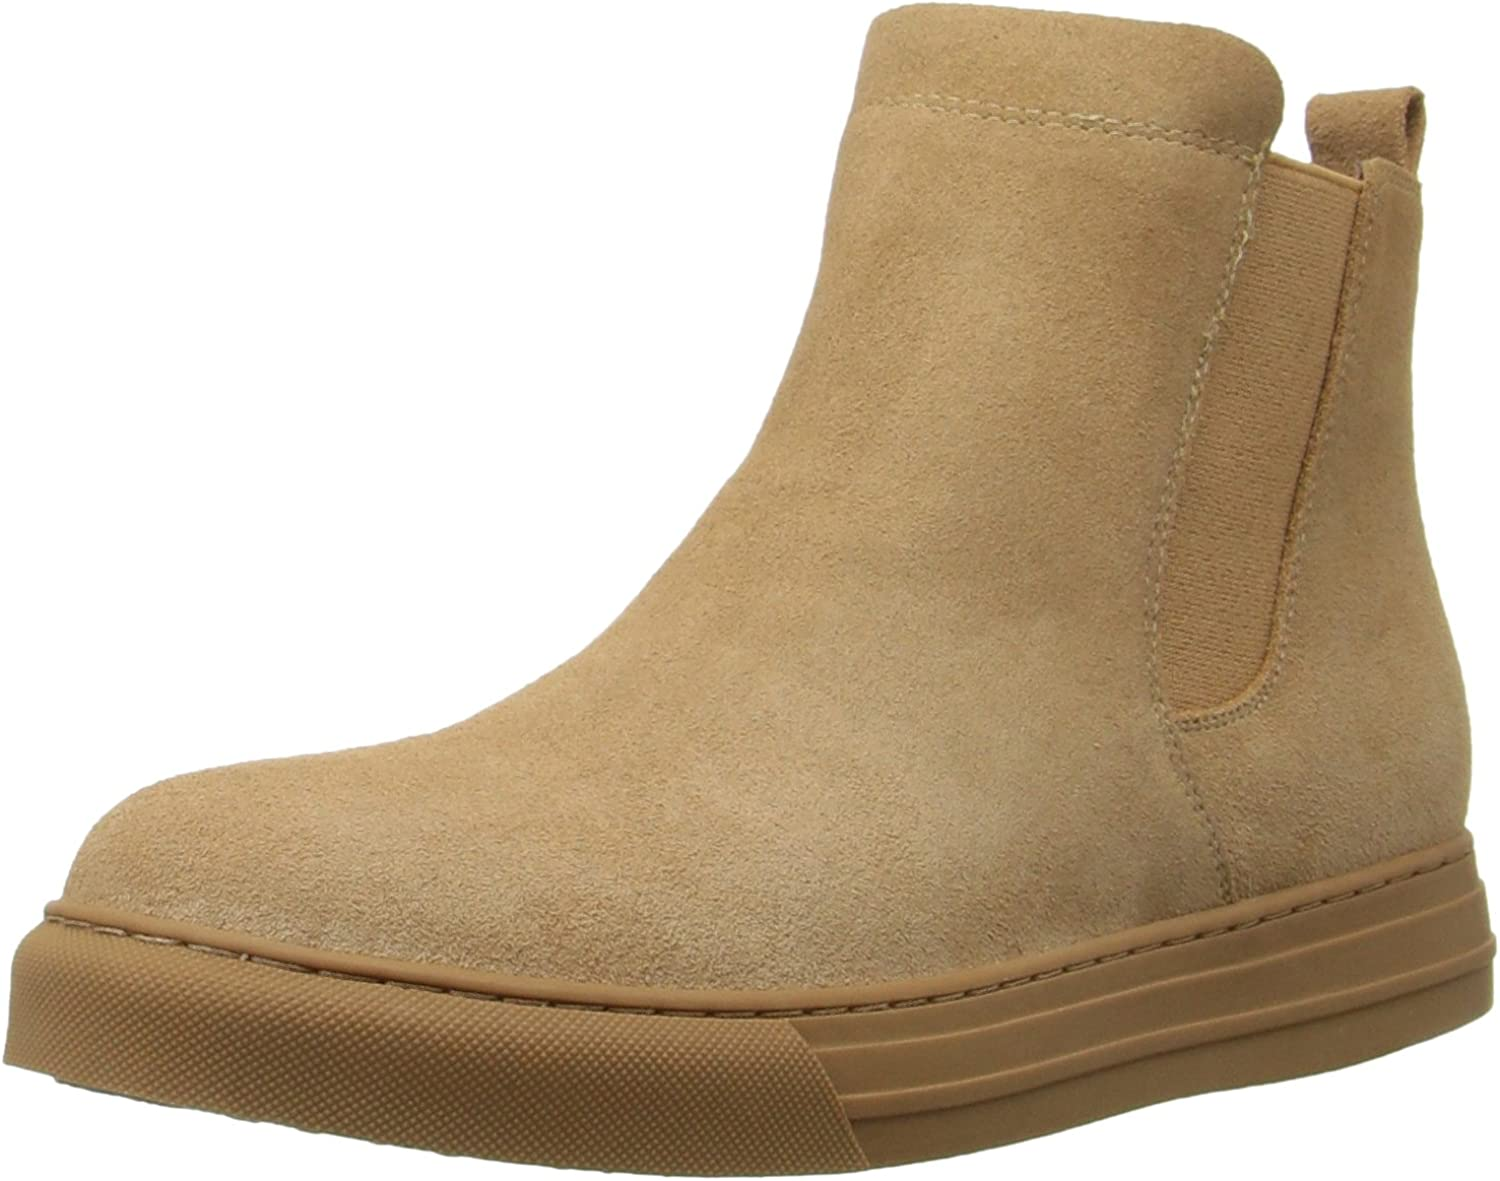 Dirty Laundry by Chinese Laundry Women's Fabina Boot